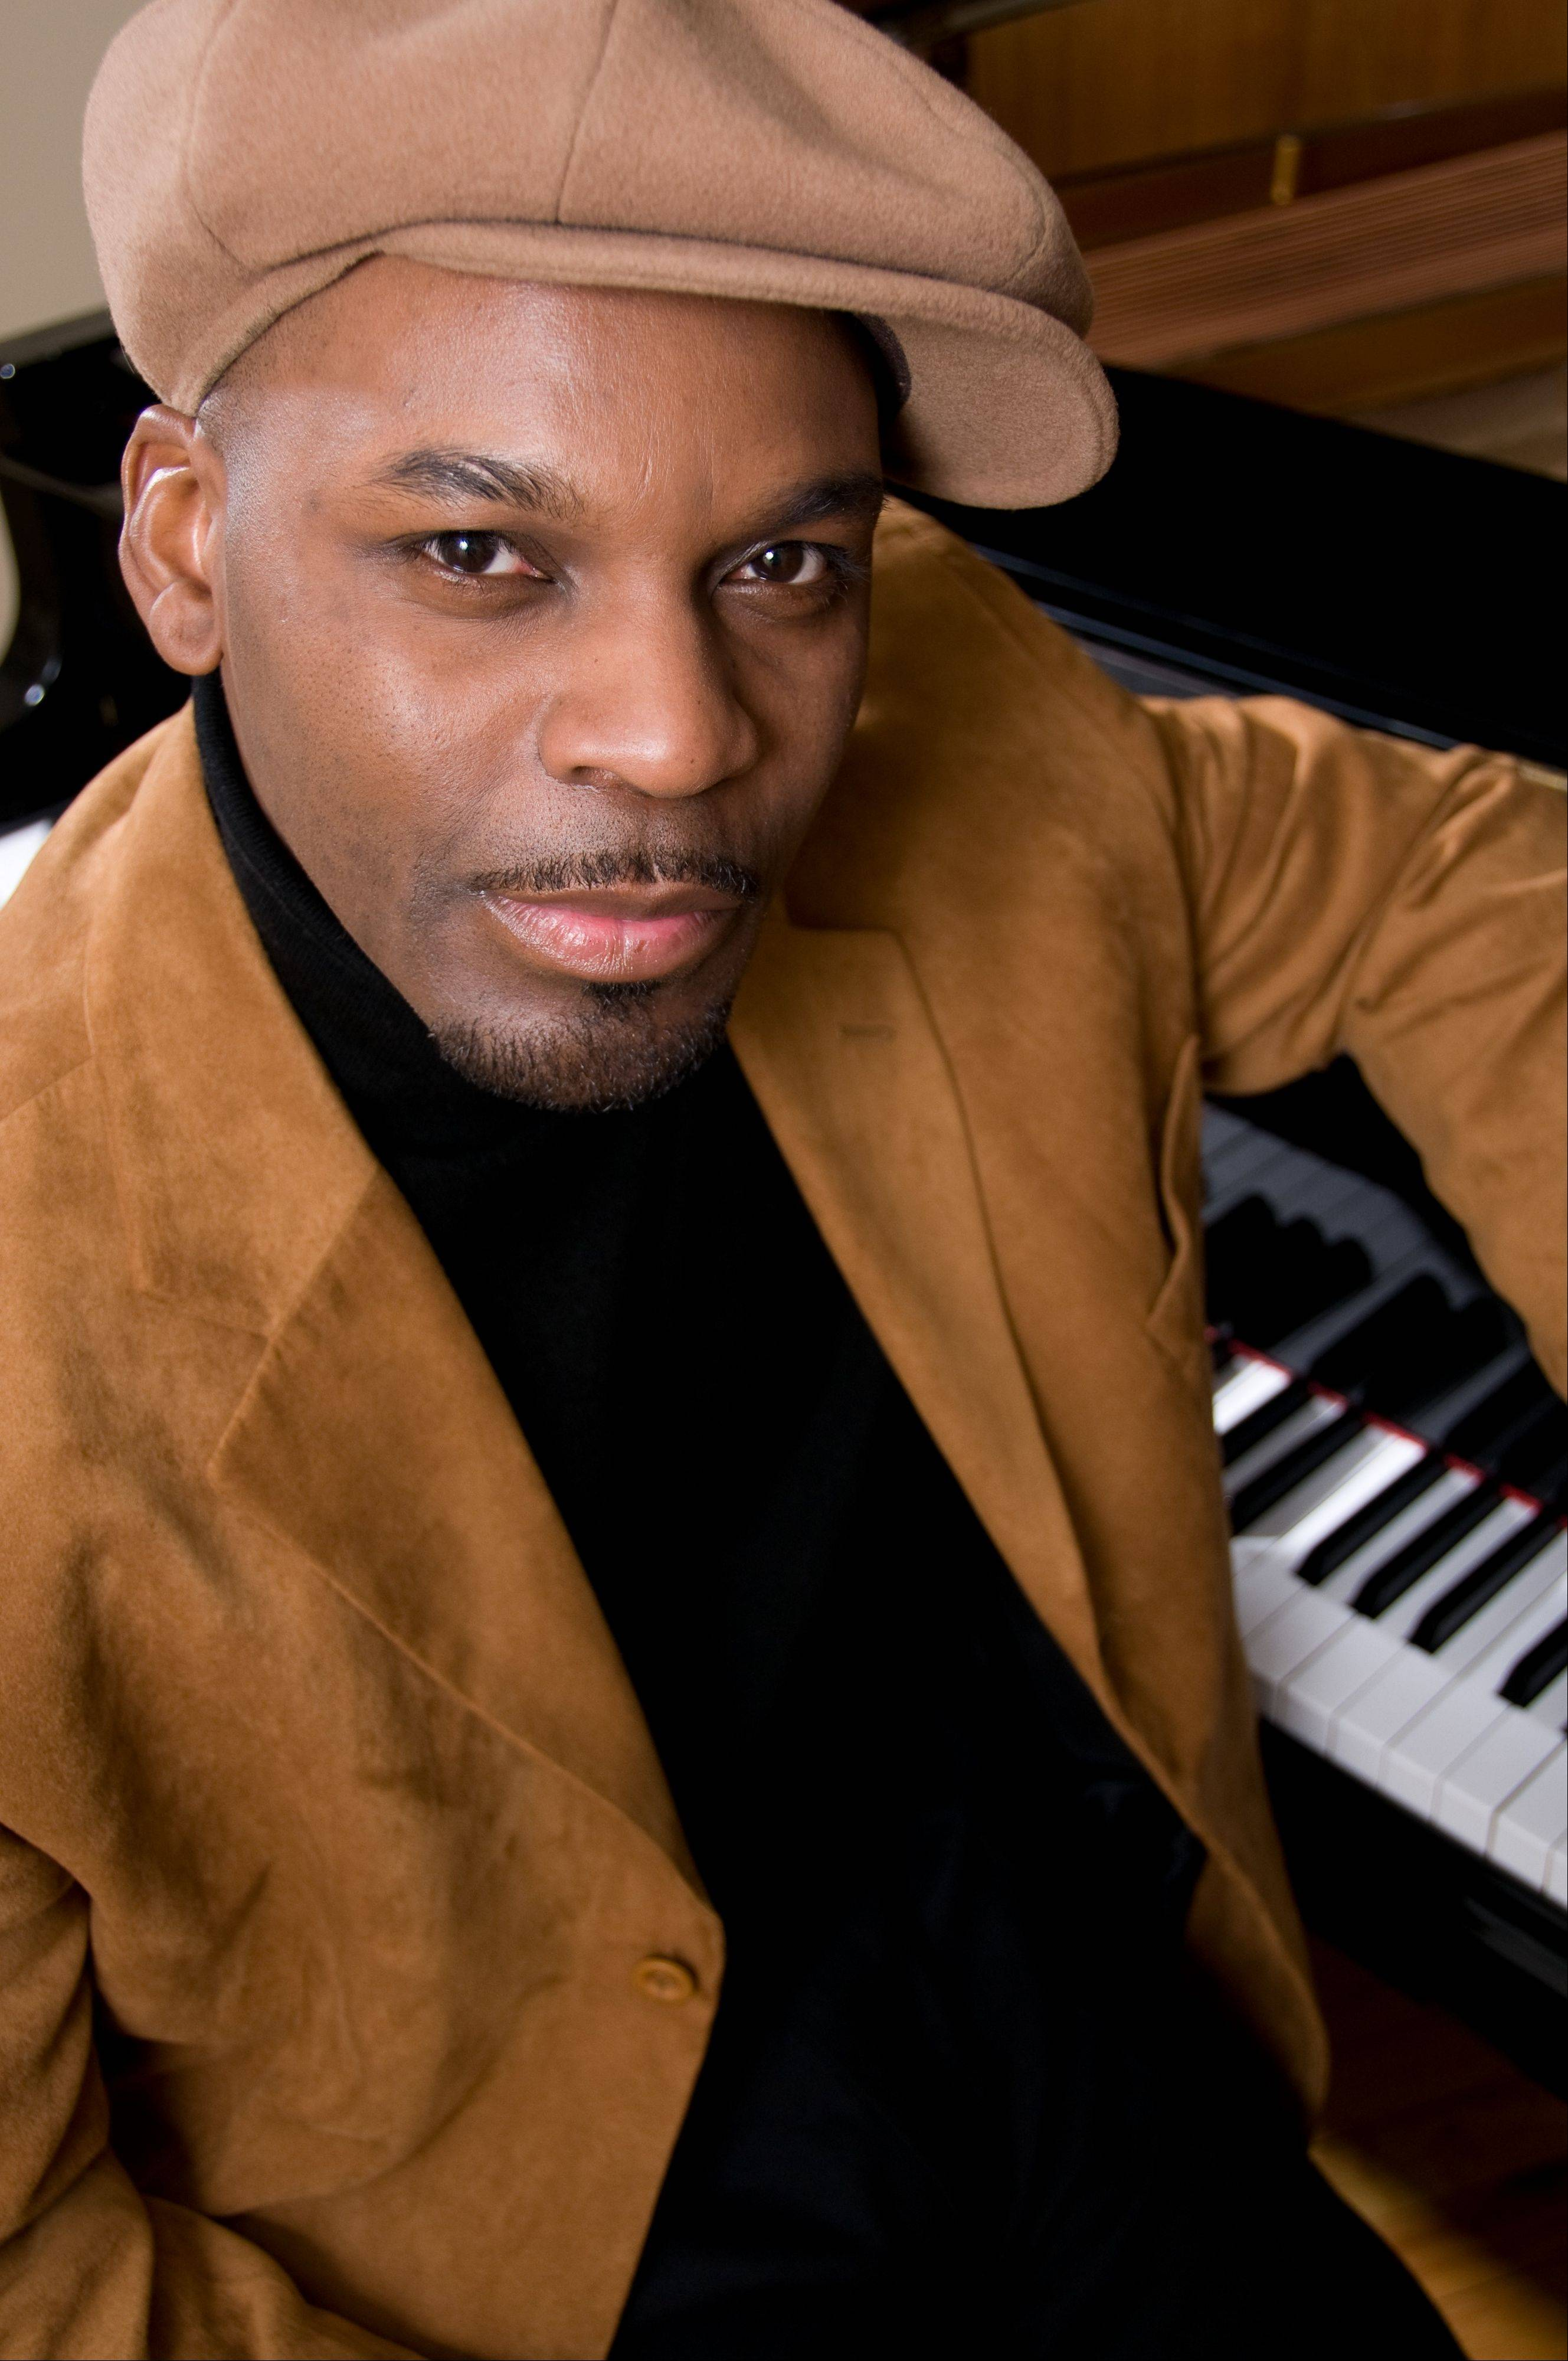 Ragtime pianist and composer Reginald R. Robinson is set to perform at the Sanfilippo Estate in Barrington Hills on Saturday, Aug. 18.